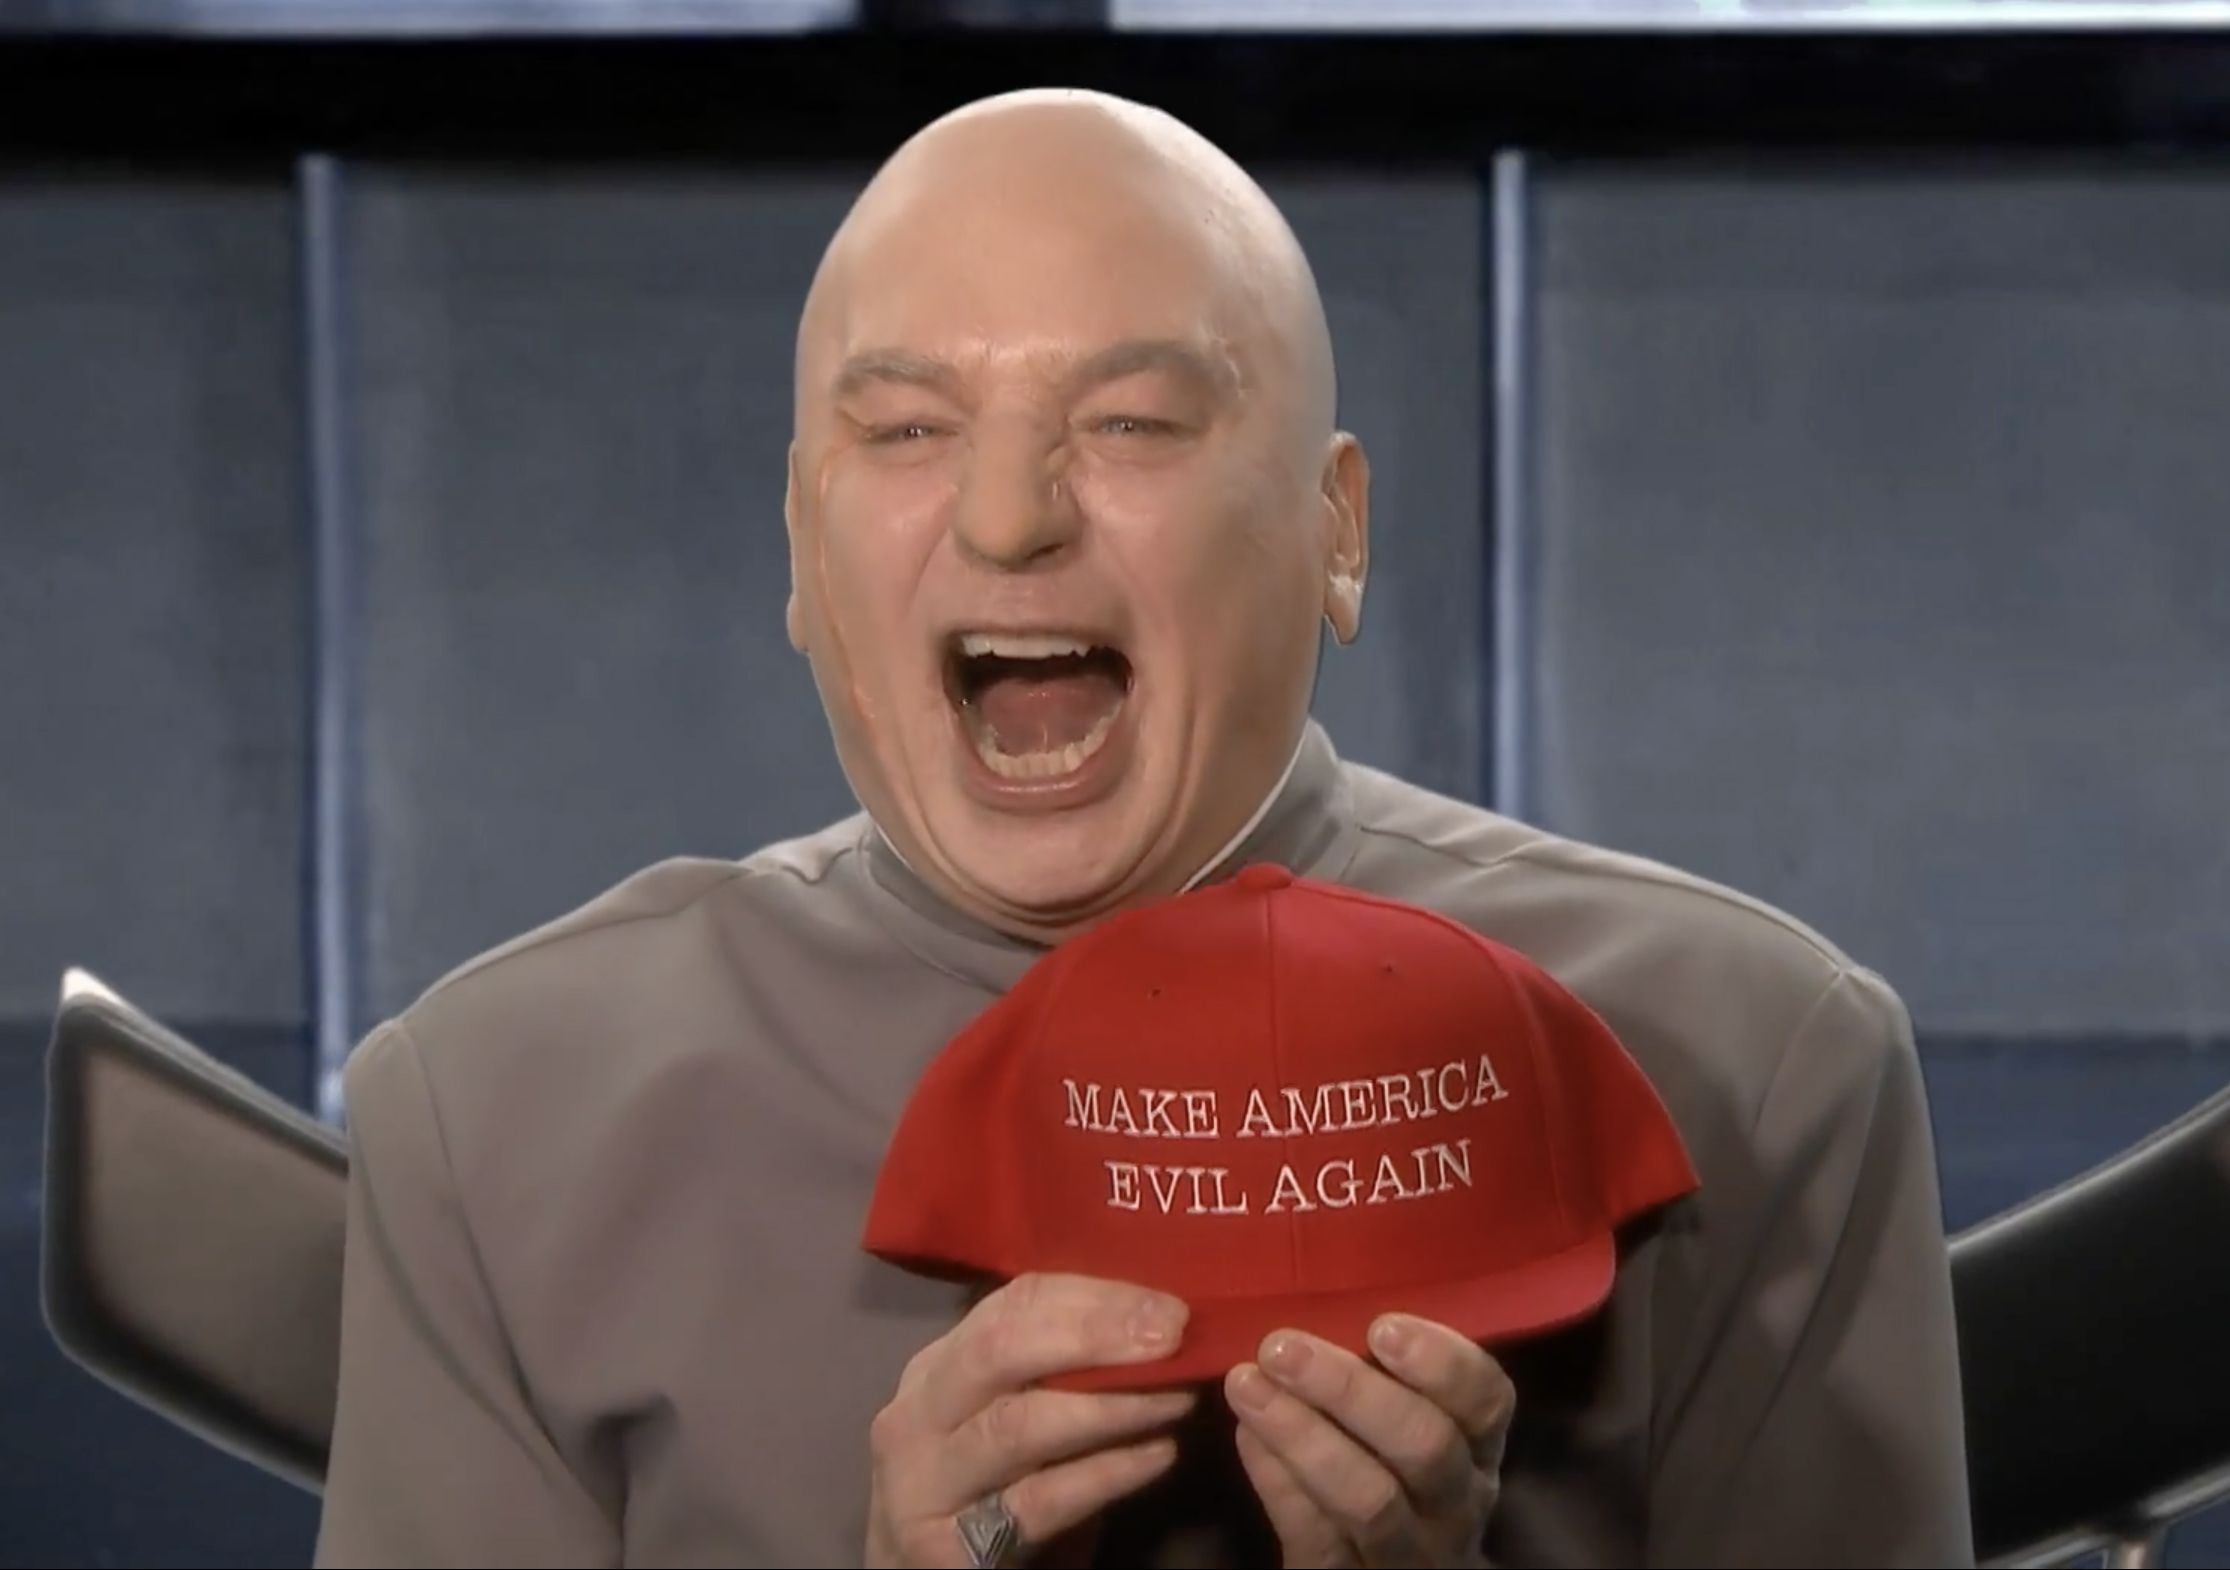 dr evil stops by tonight show ahead of midterm elections